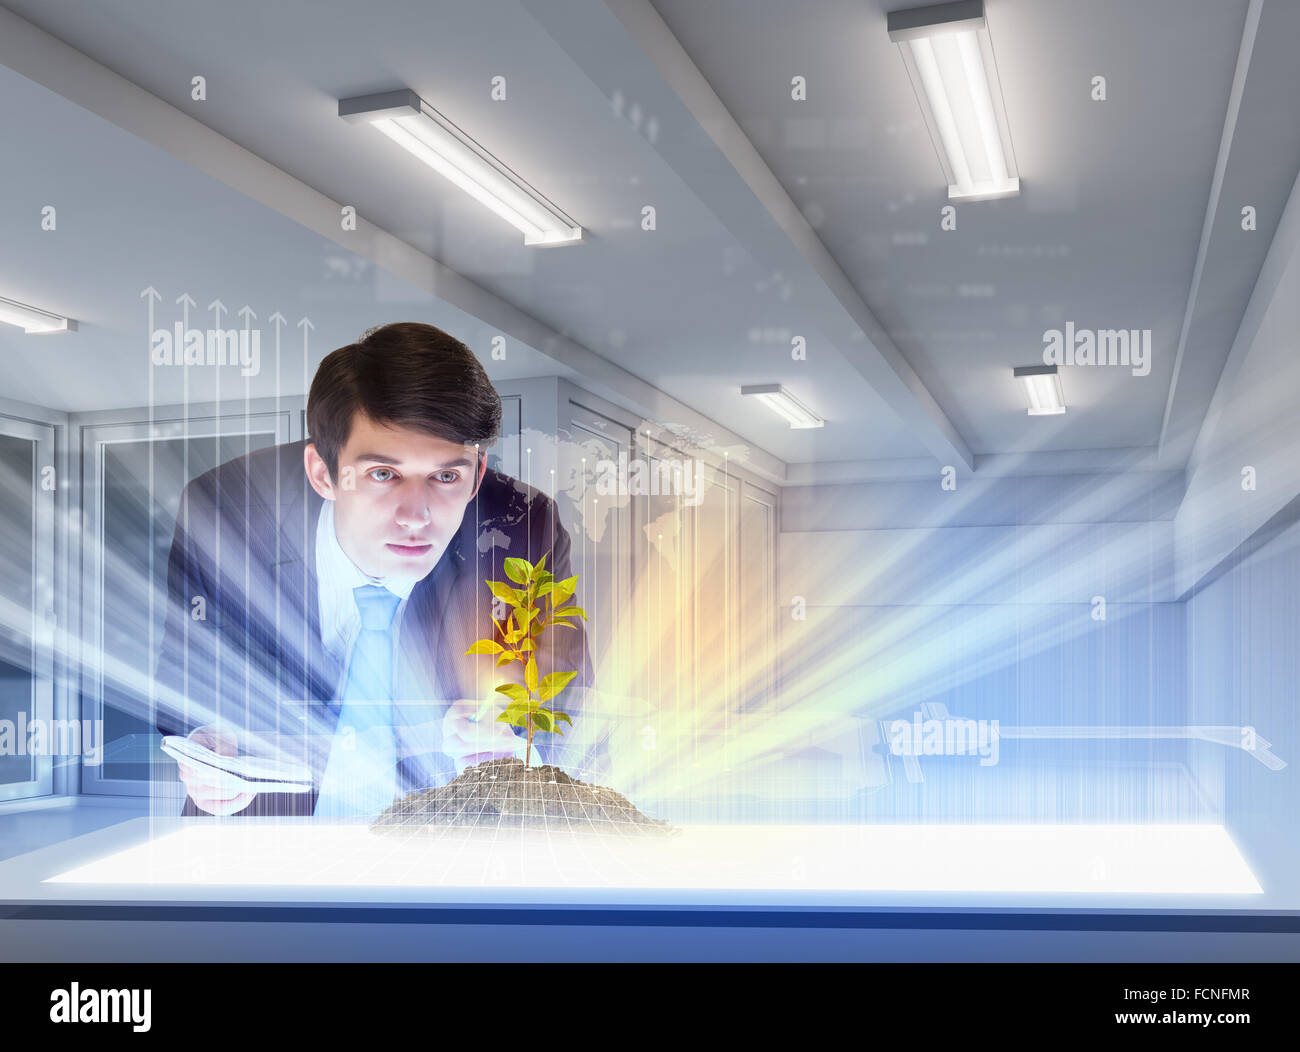 Young businessman looking at high-tech du sprig Photo Stock